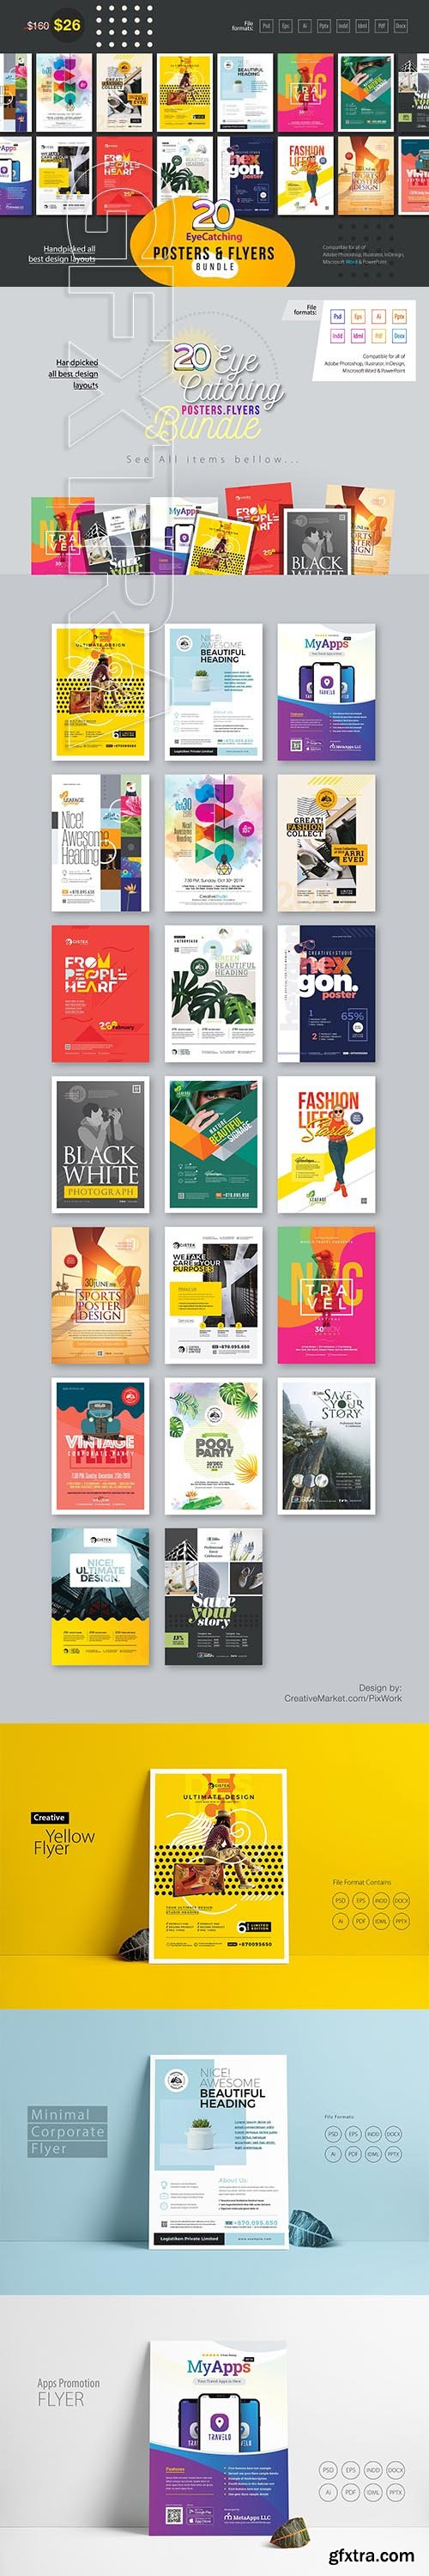 CreativeMarket - EyeCatching Poster & Flyer Bundle 3334375